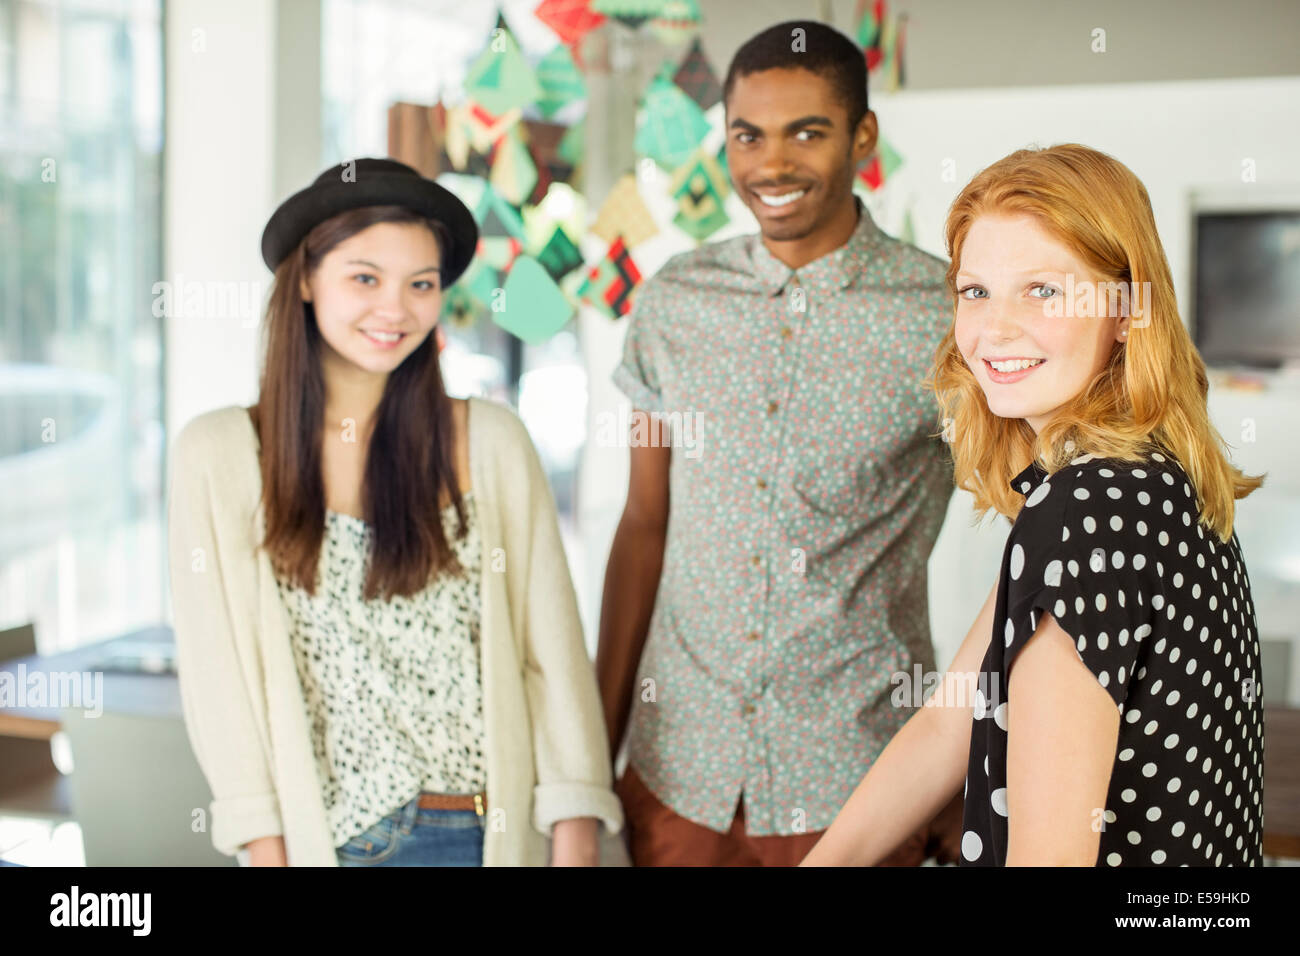 People smiling in office - Stock Image